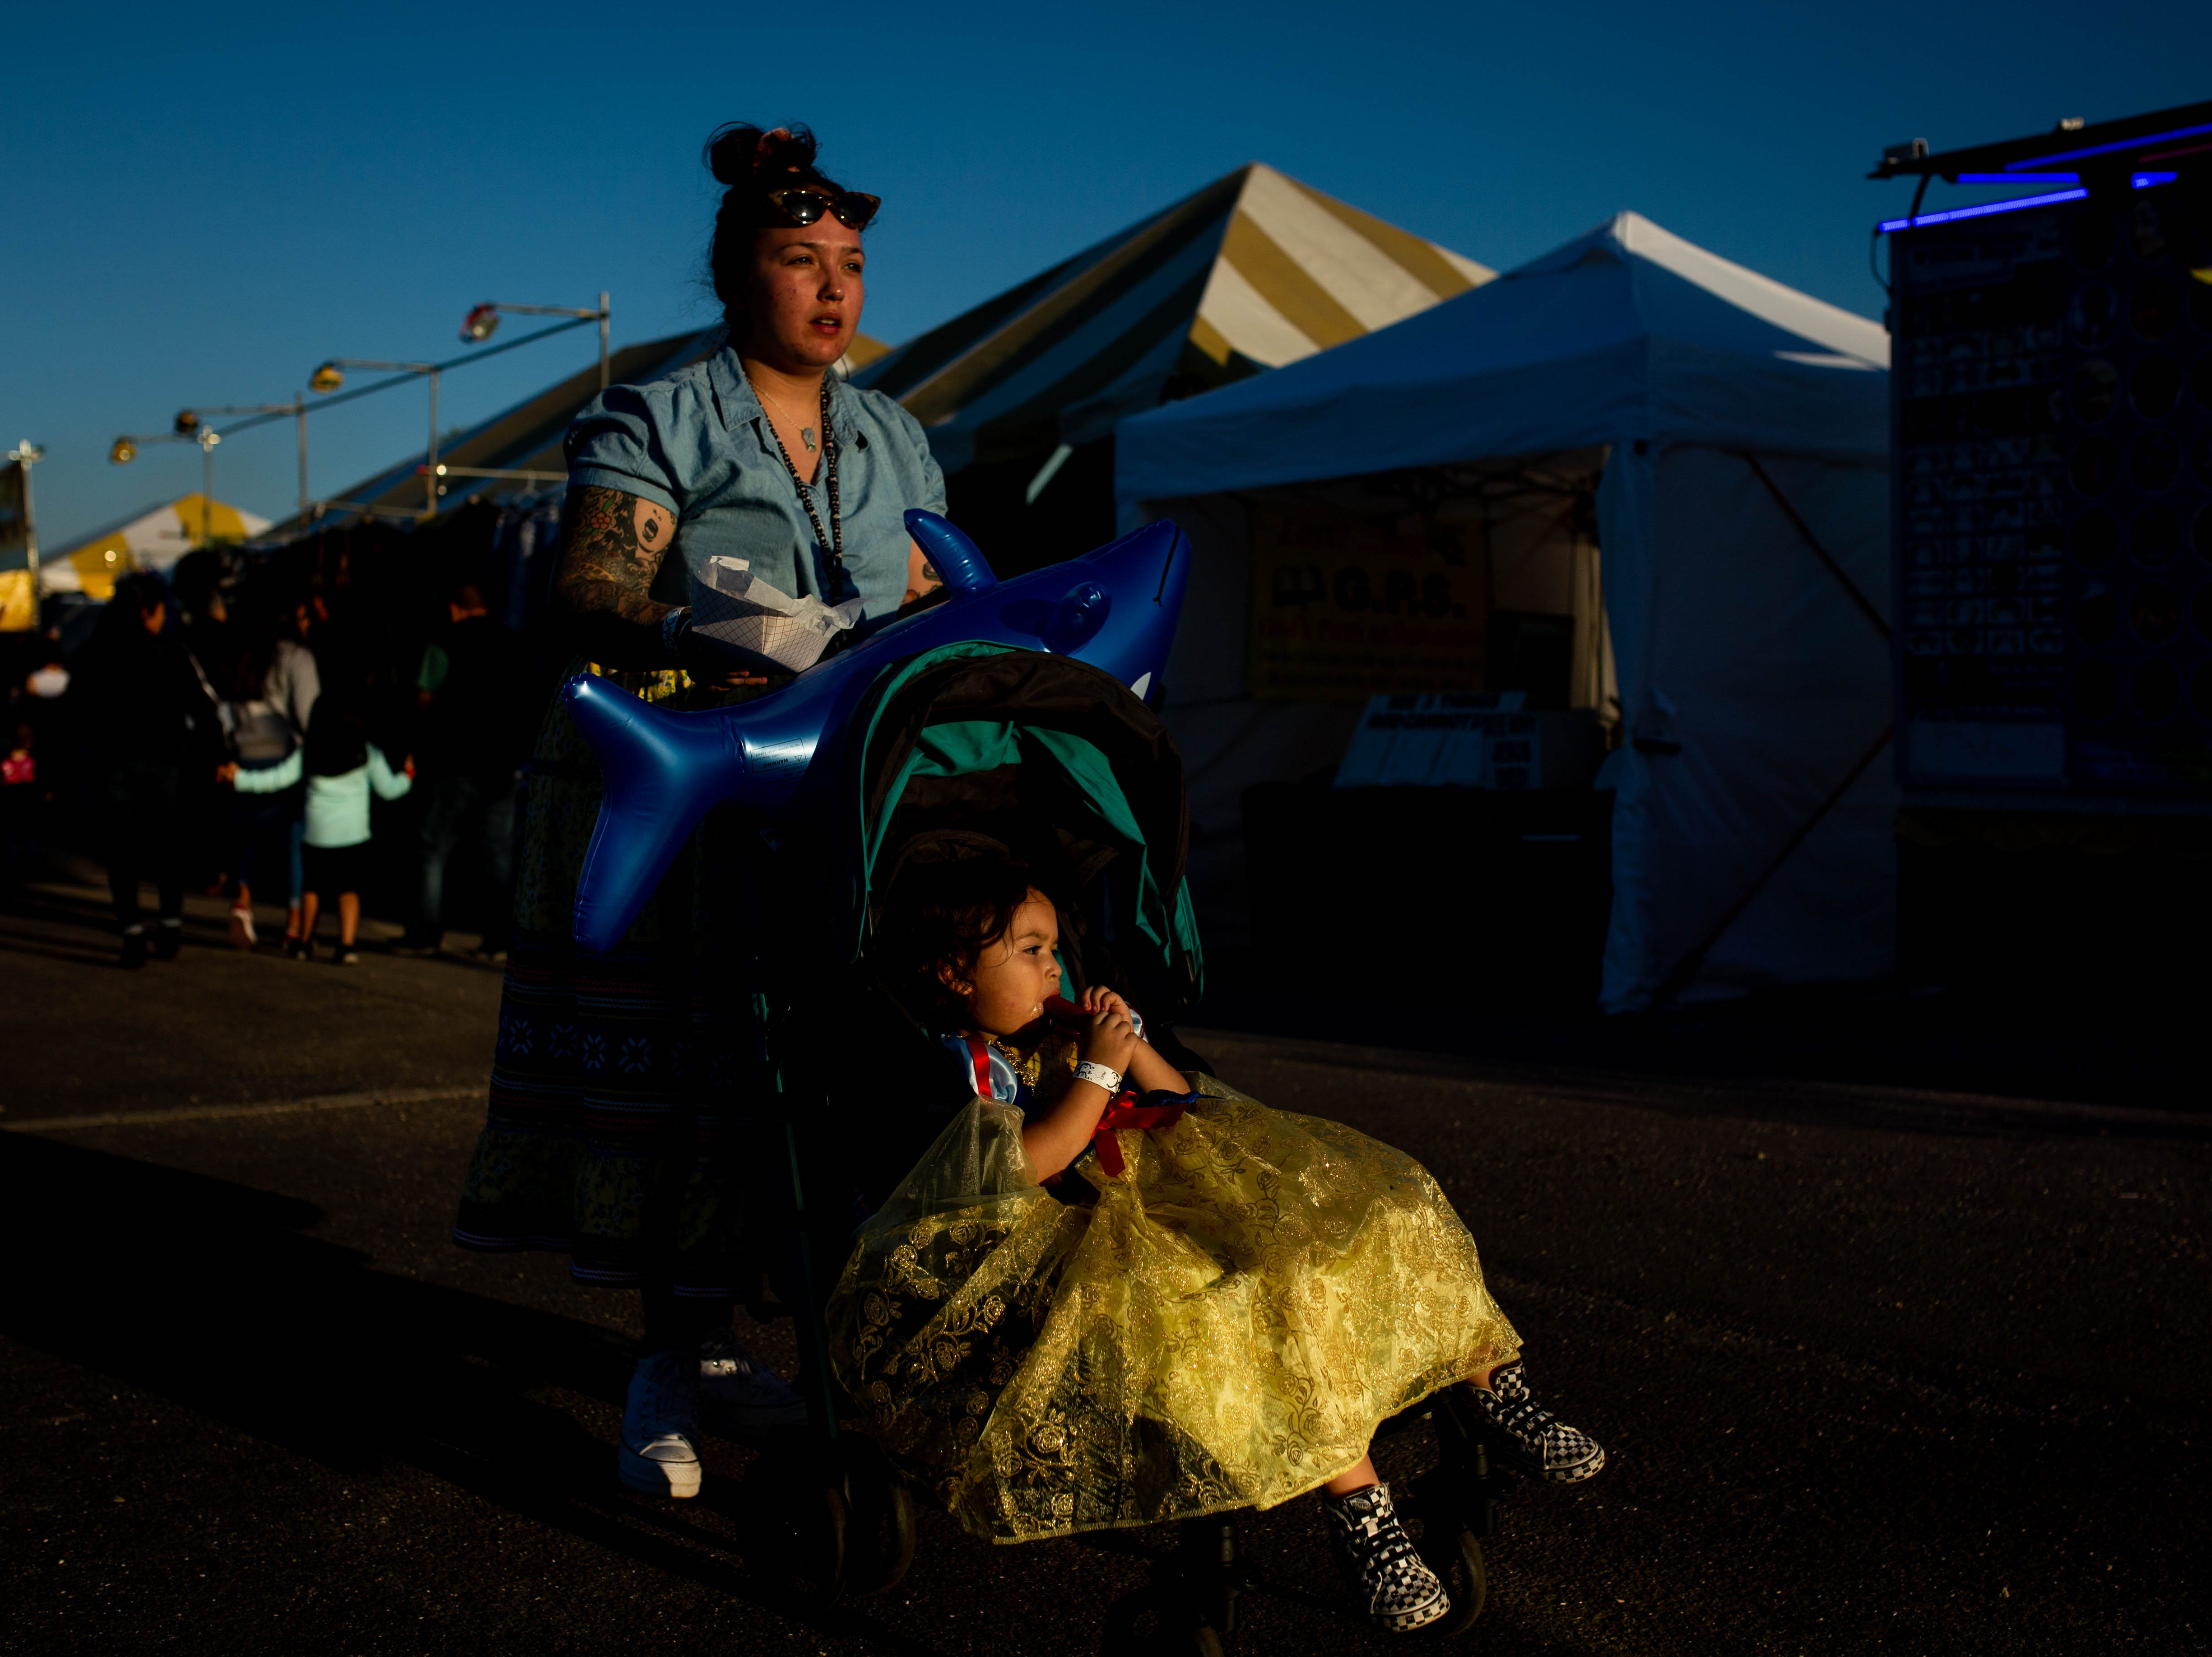 Dakota Osceola pushes her daughter Mia, 2, in a stroller at the Collier Fair in Naples on March 21, 2019. Since Mia's birth, Dakota has been a single mother, relying largely on the help of her family to raise her daughter.